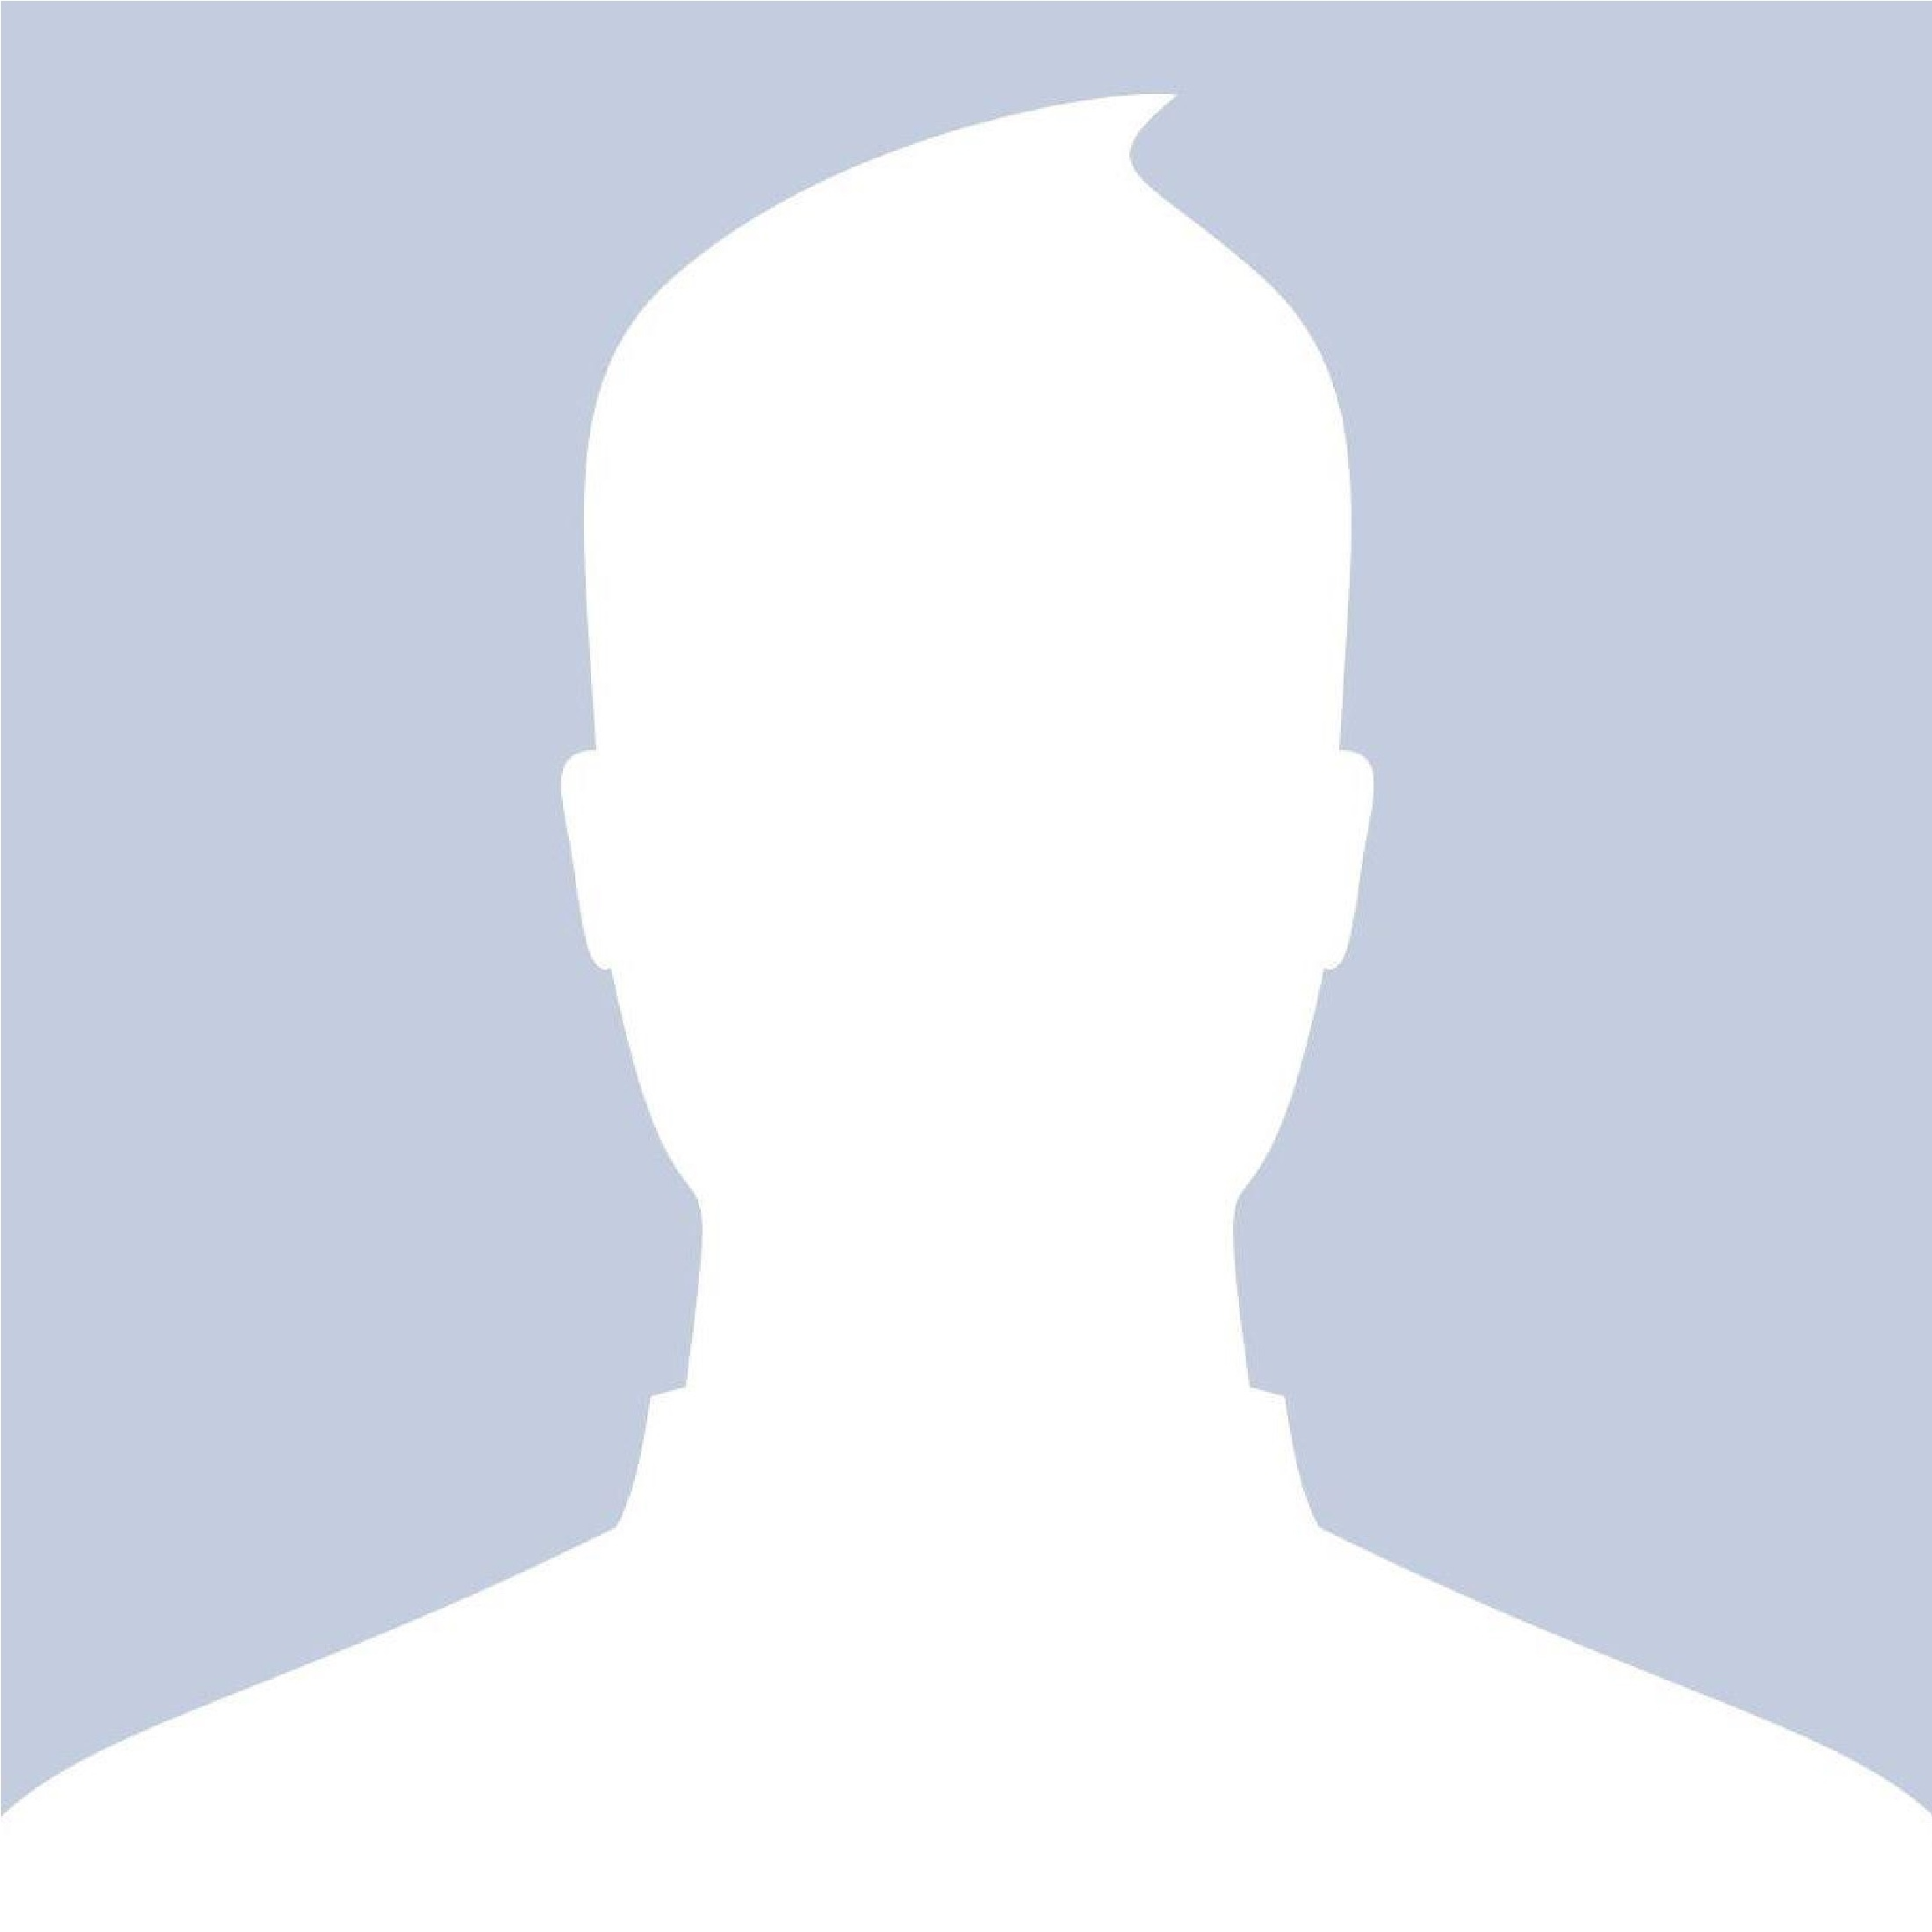 anonymes facebook profil